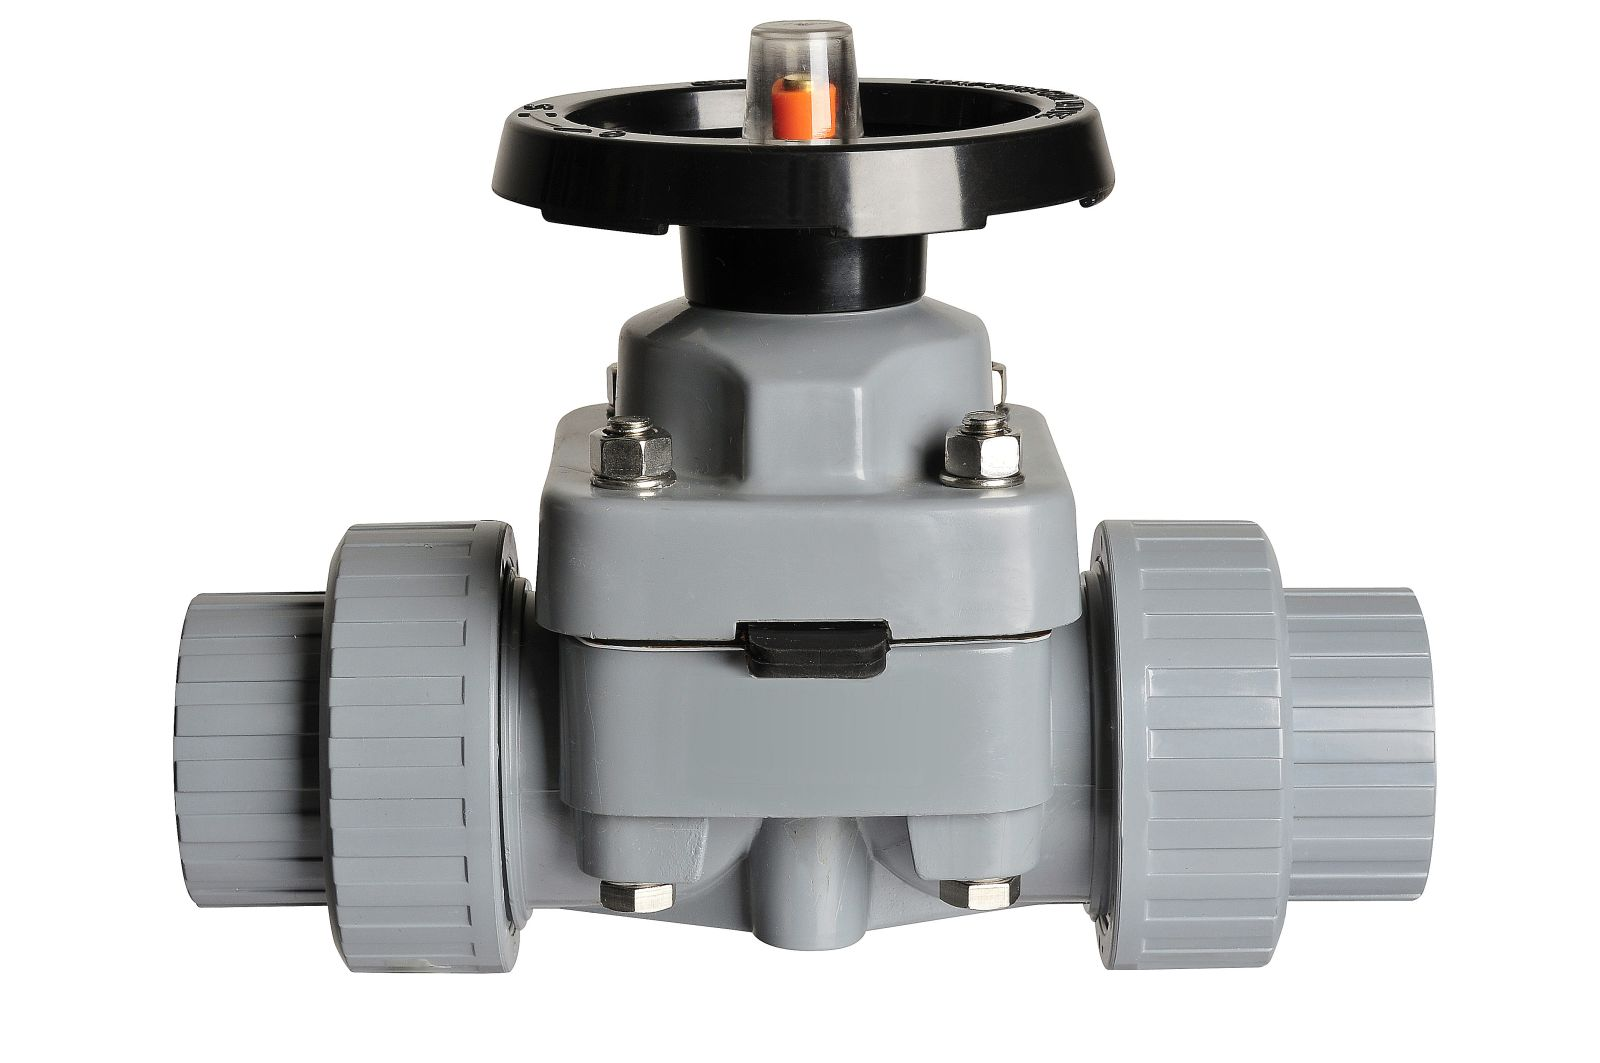 Diaphragm valve cpvc images how to guide and refrence for Copper vs cpvc for water lines